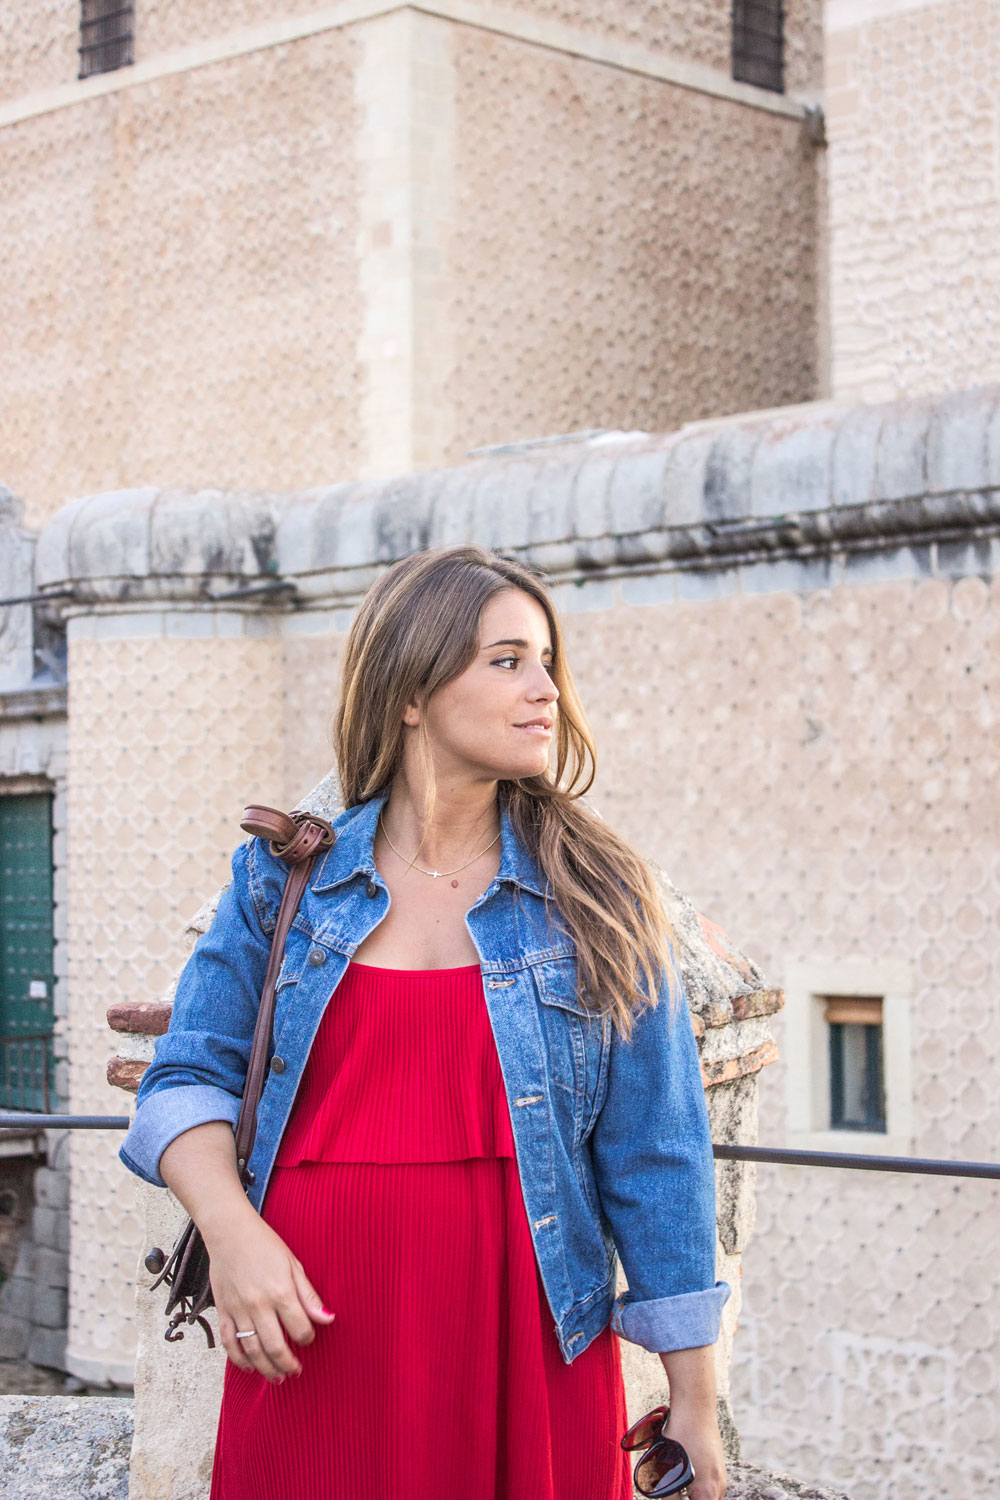 loreto-made-in-style-vestido-rojo-red-dress-segovia-leather-white-vans-denim-jacket-14